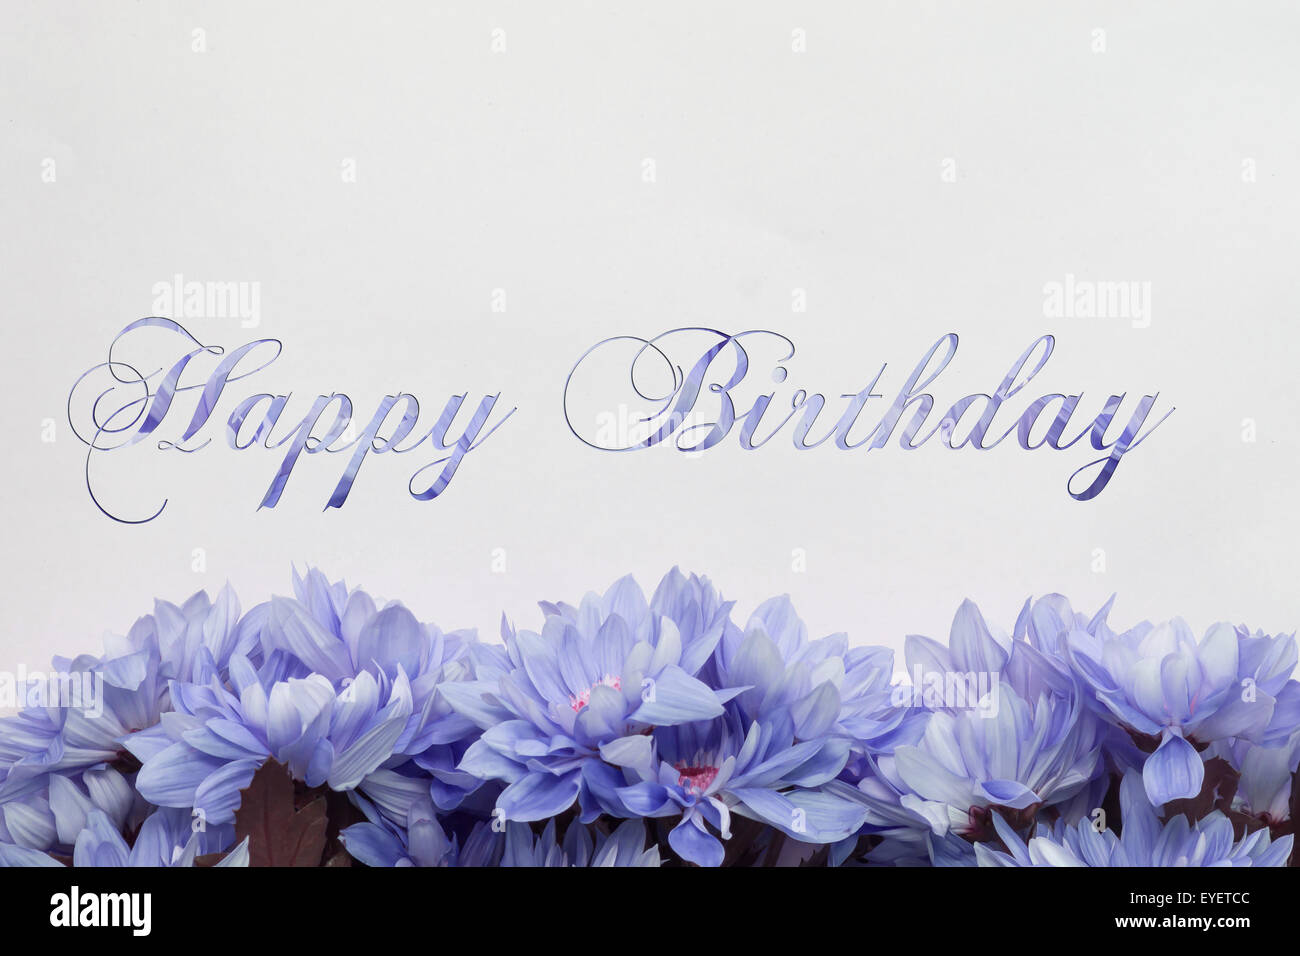 happy birthday greeting card flowers and text stock image - Happy Birthday Cards Flowers